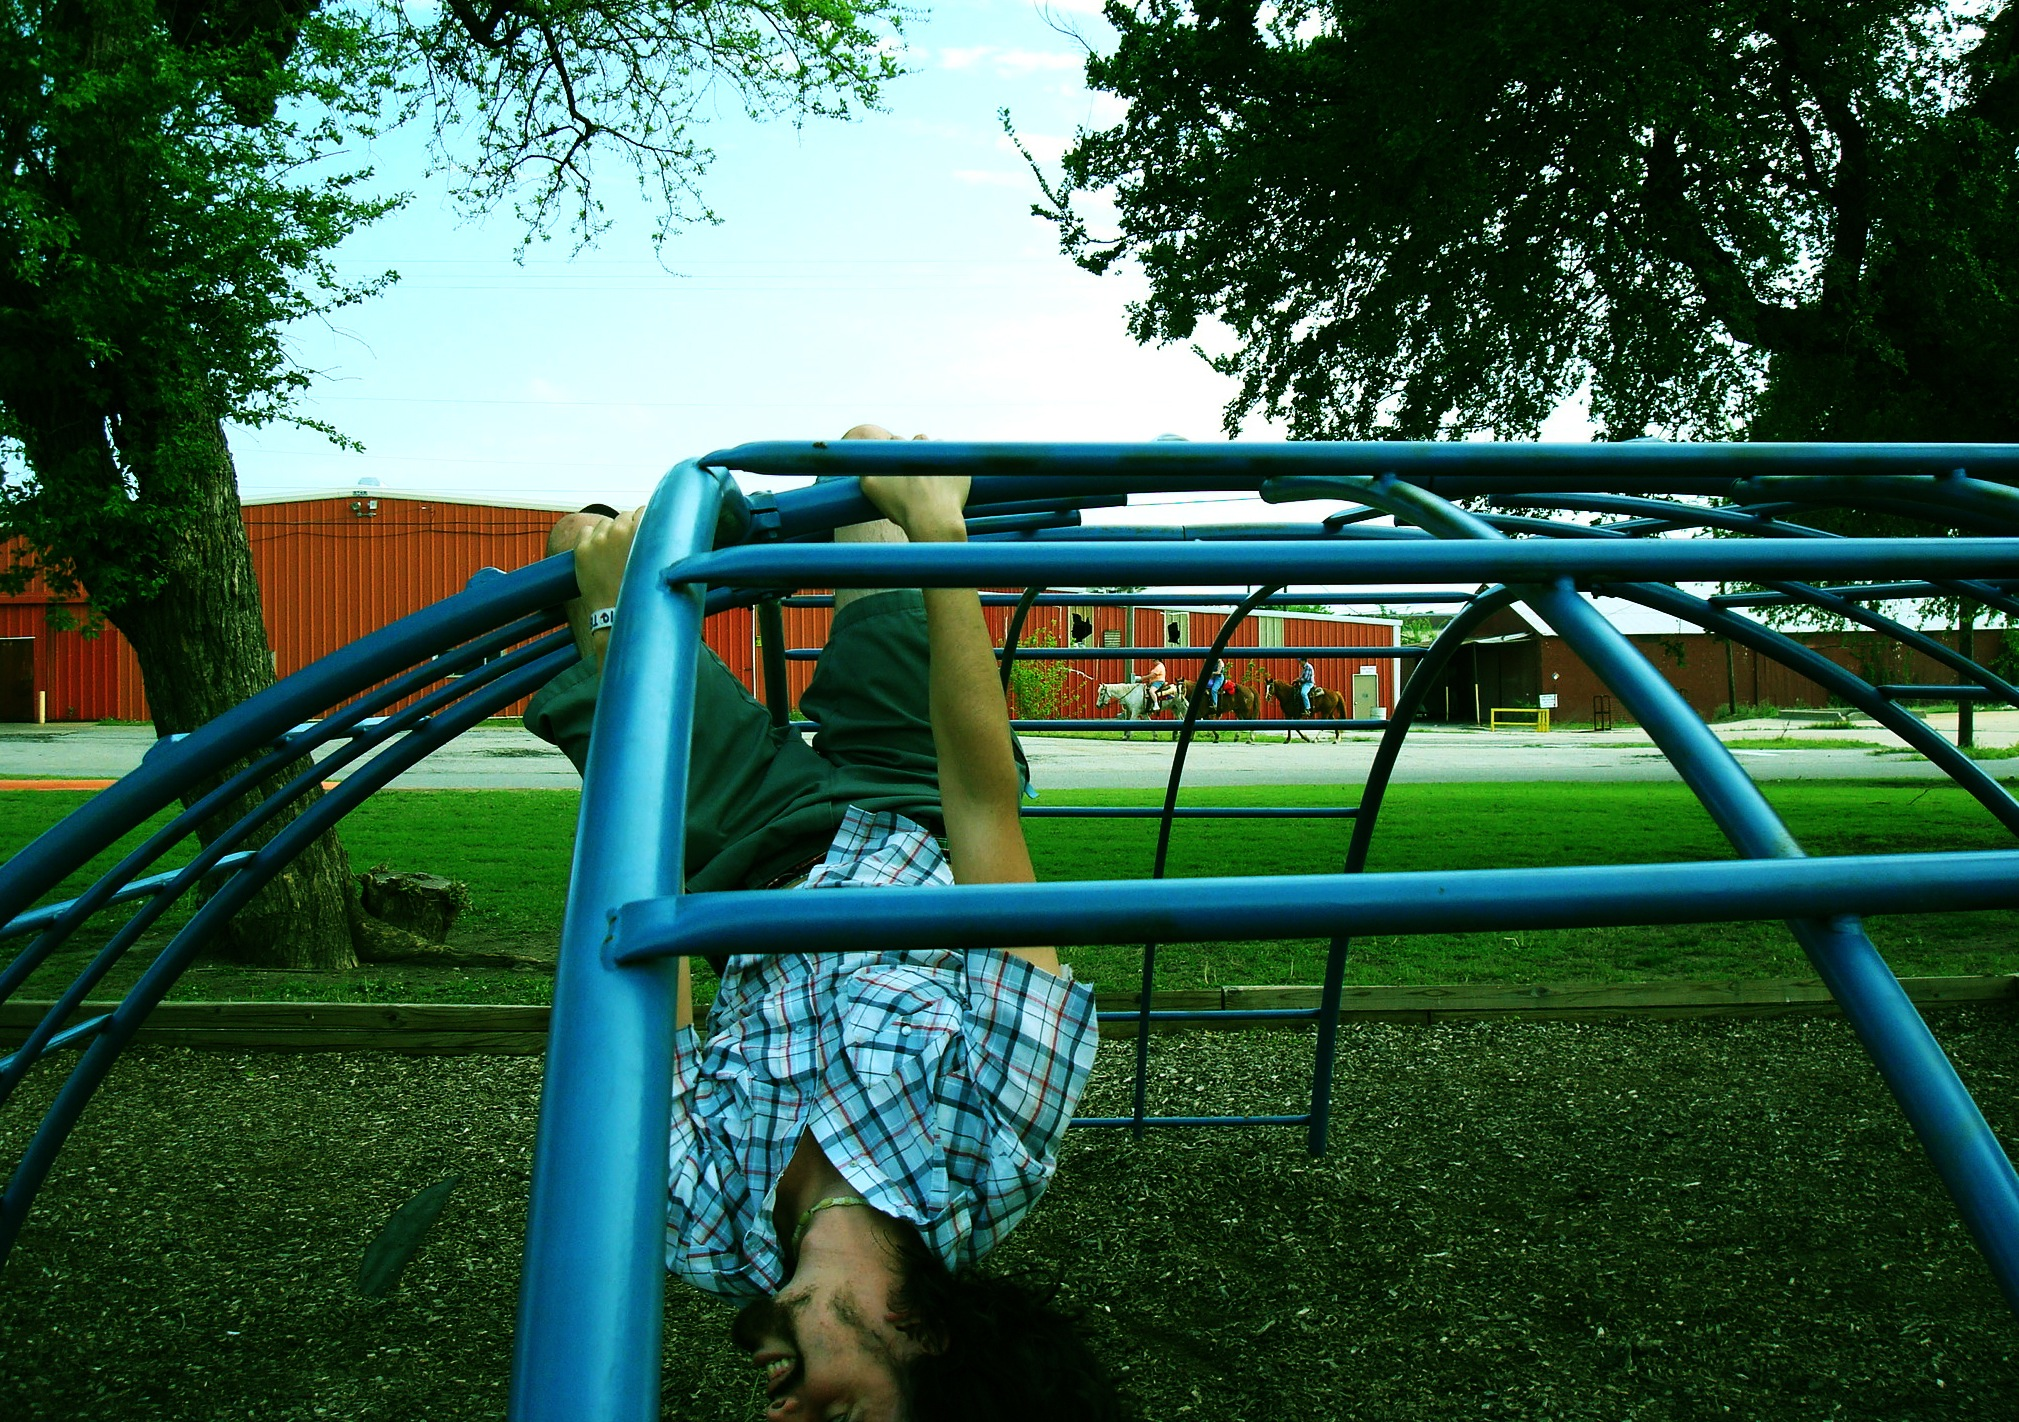 Daniel being Daniel, hanging upside-down from monkey bars